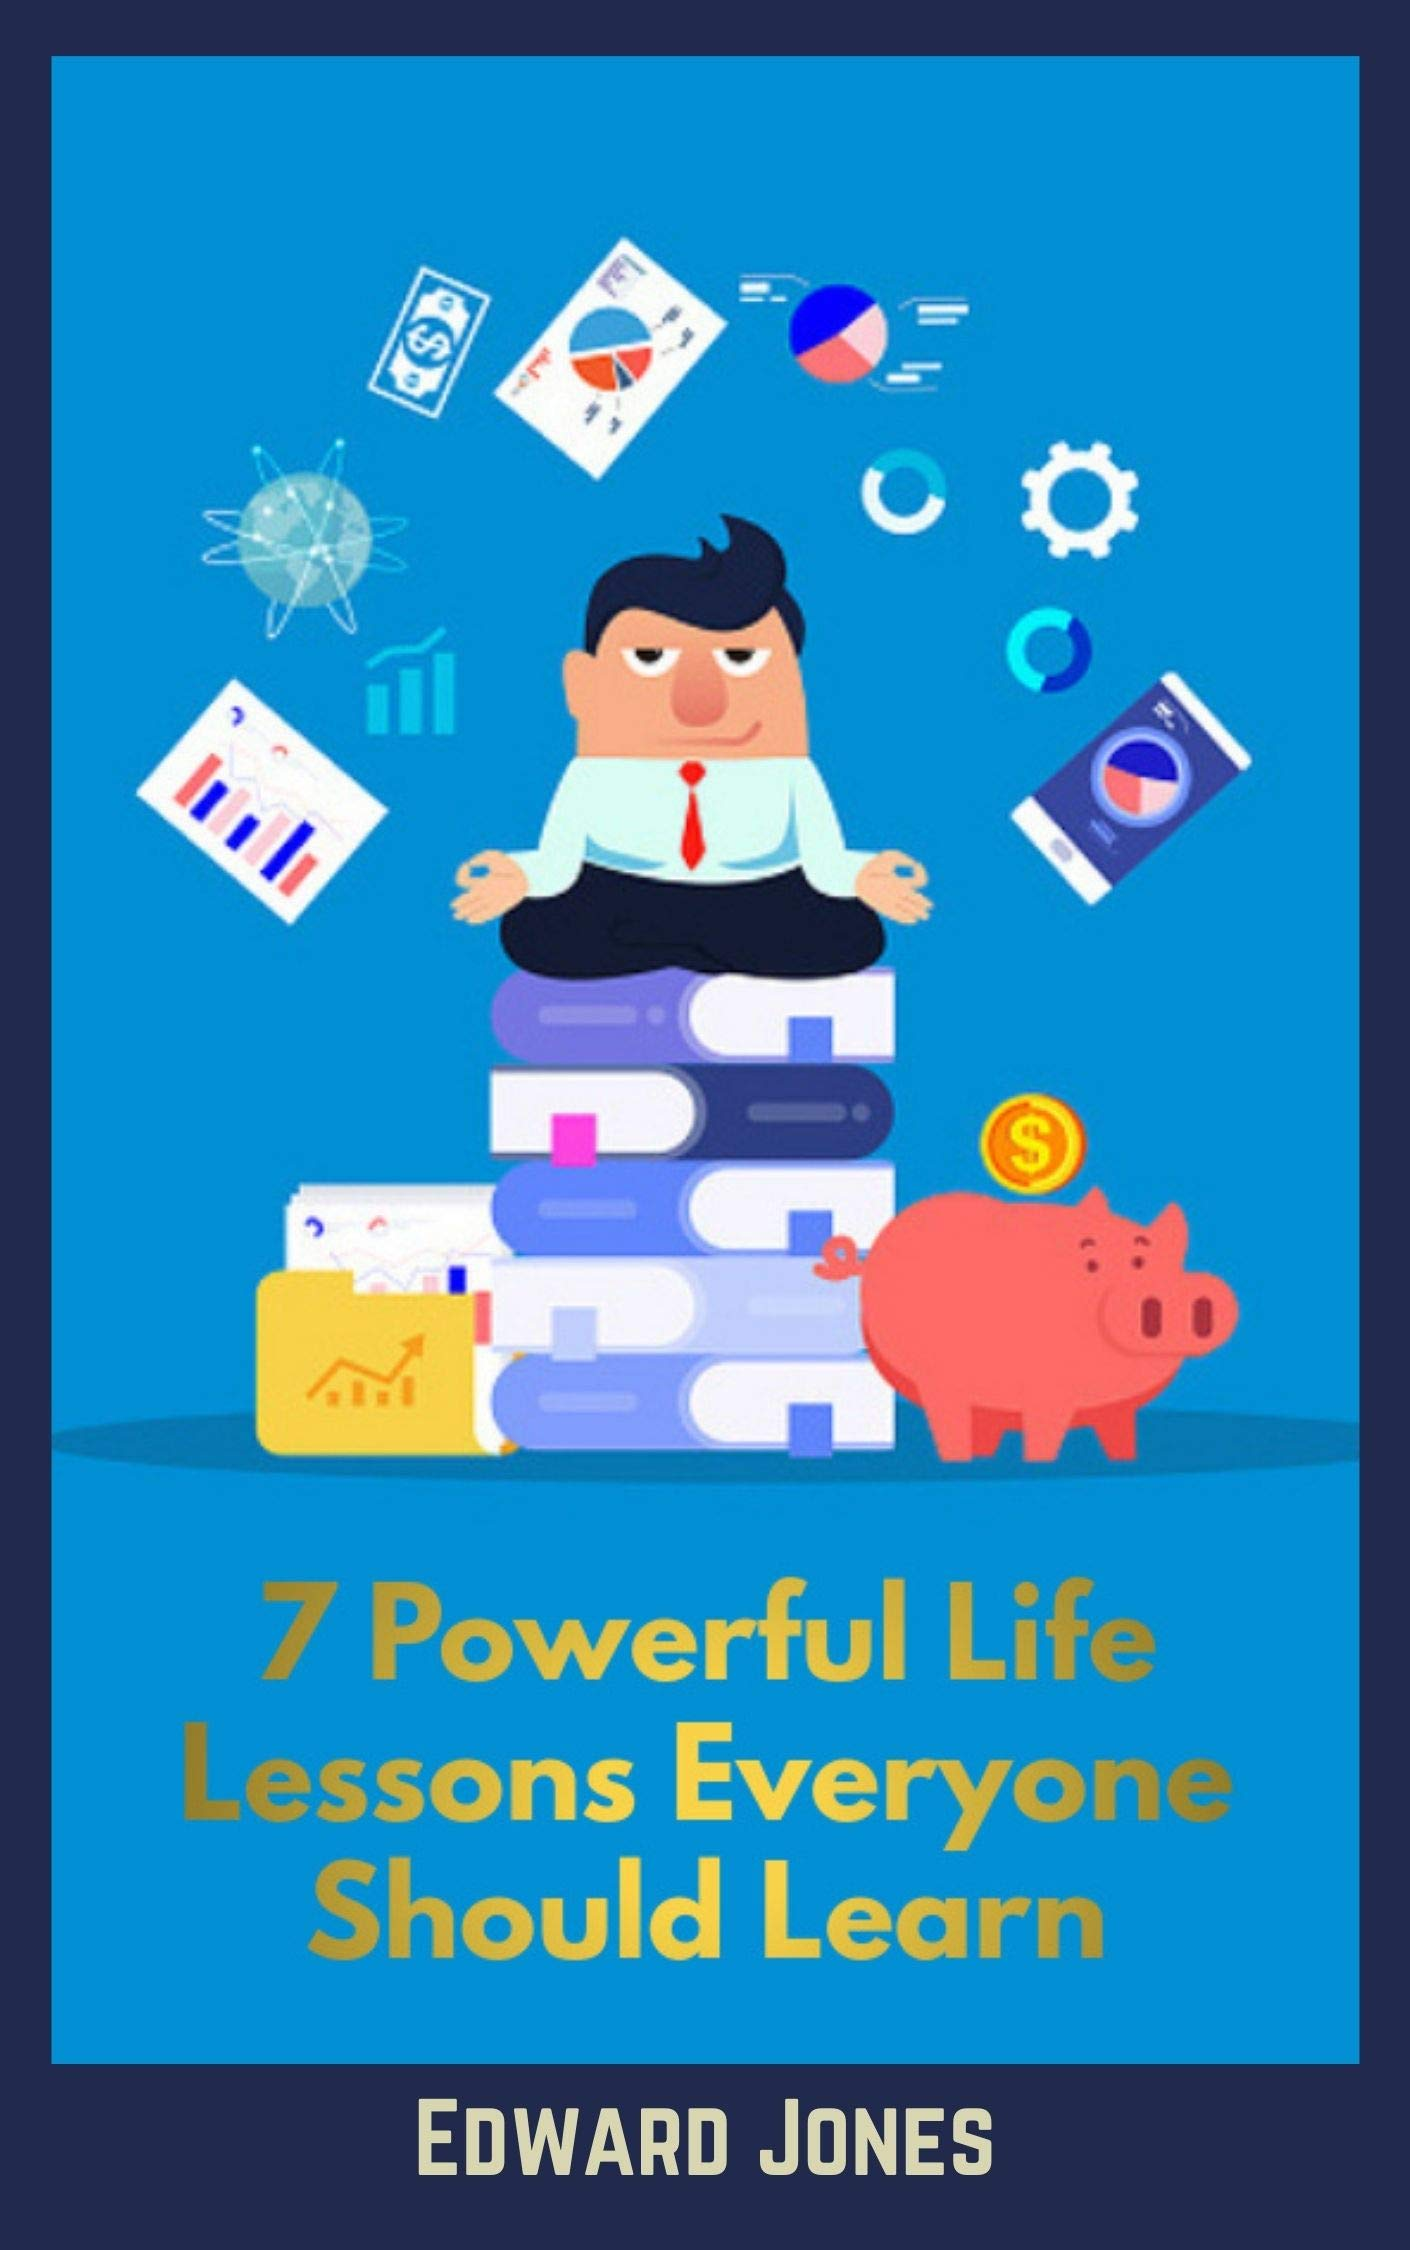 7 Powerful Life Lessons Everyone Should Learn: Practical techniques to successfully master work-life balance, happiness, and goal setting.